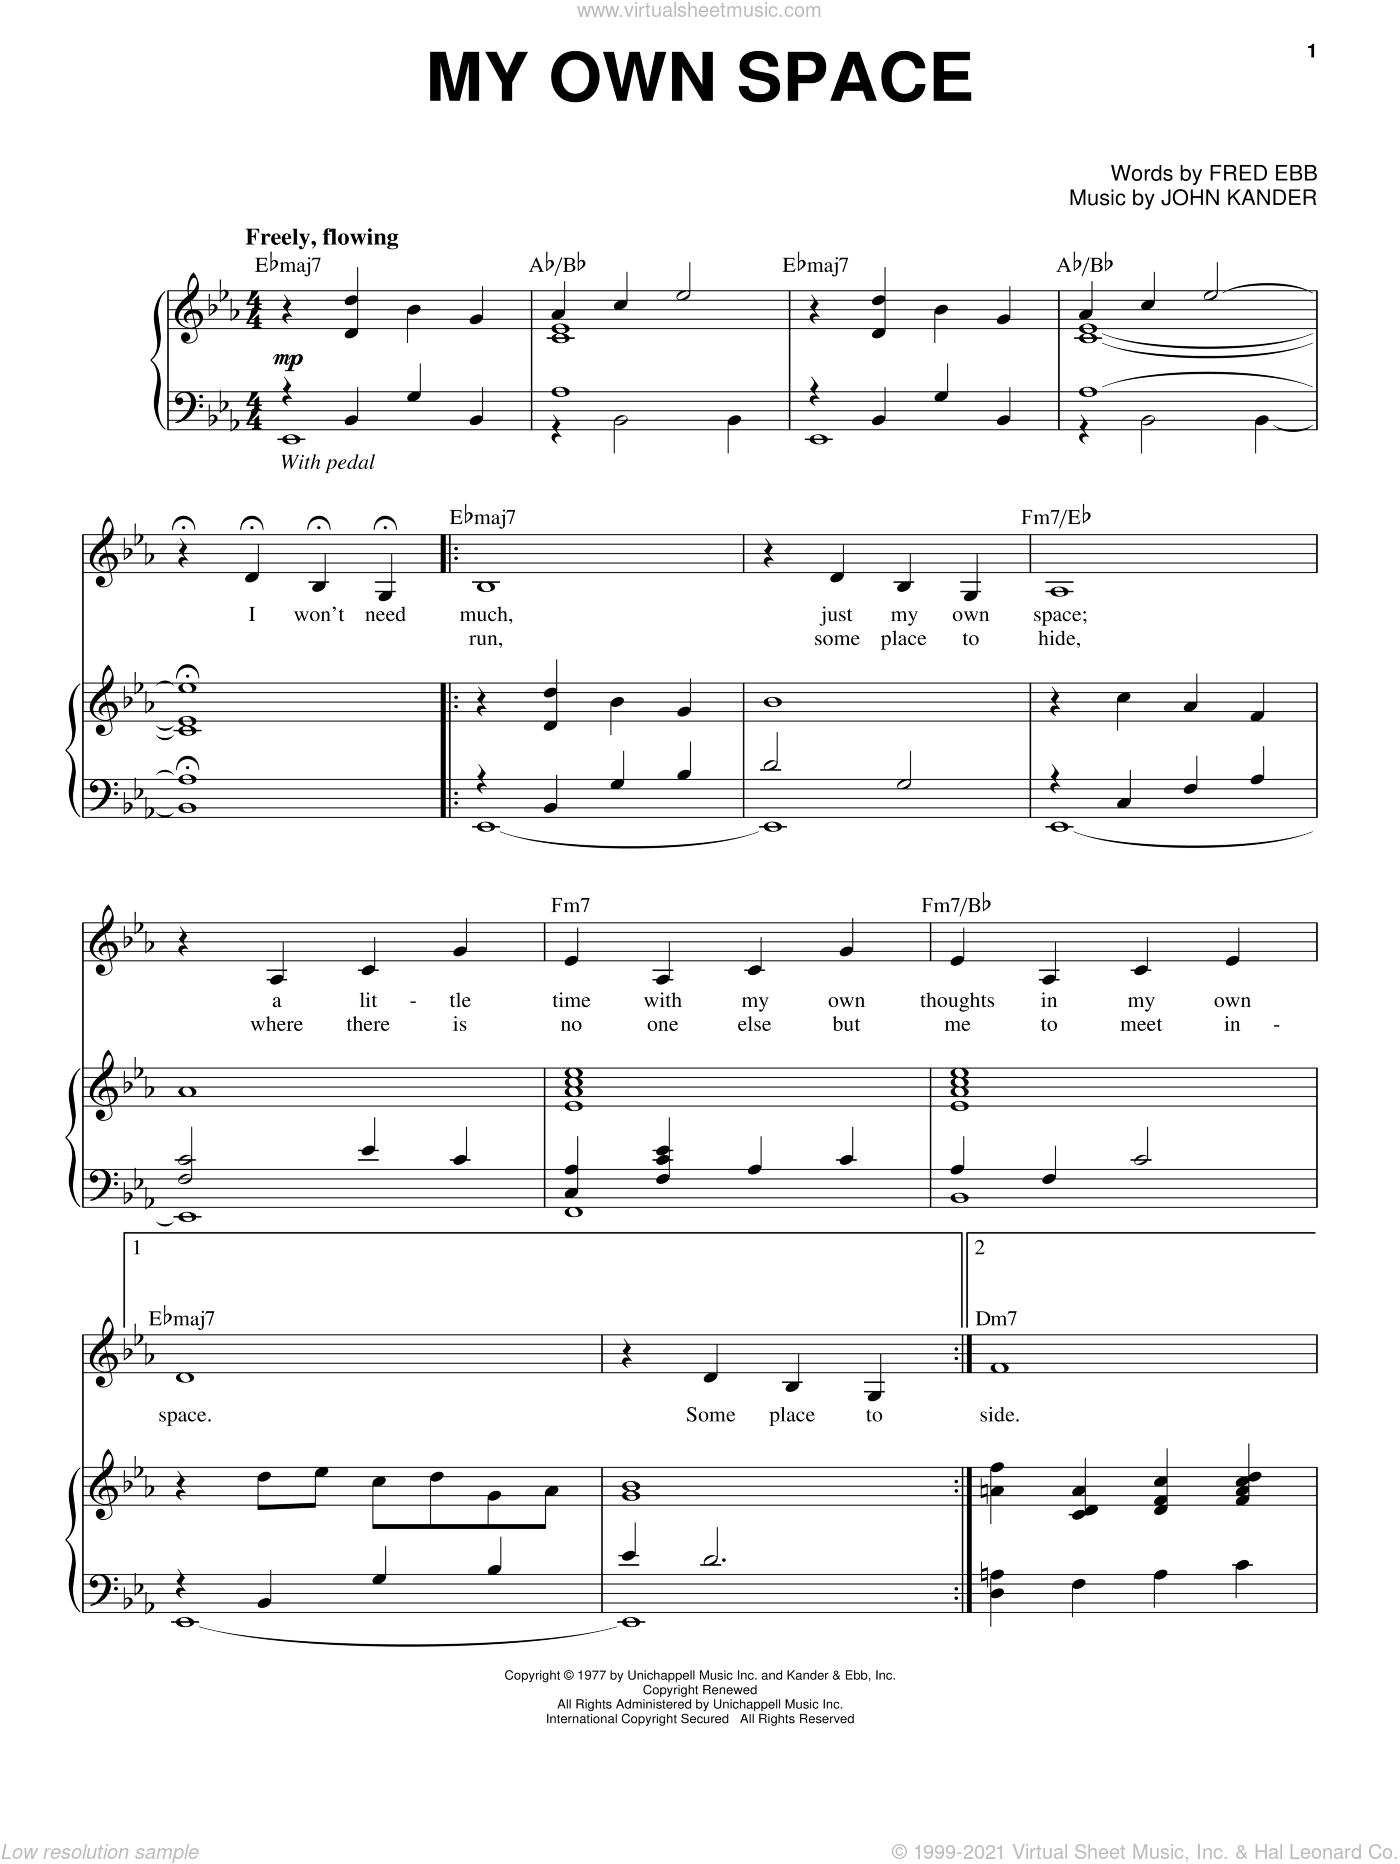 My Own Space sheet music for voice and piano by John Kander, Kander & Ebb and Fred Ebb. Score Image Preview.